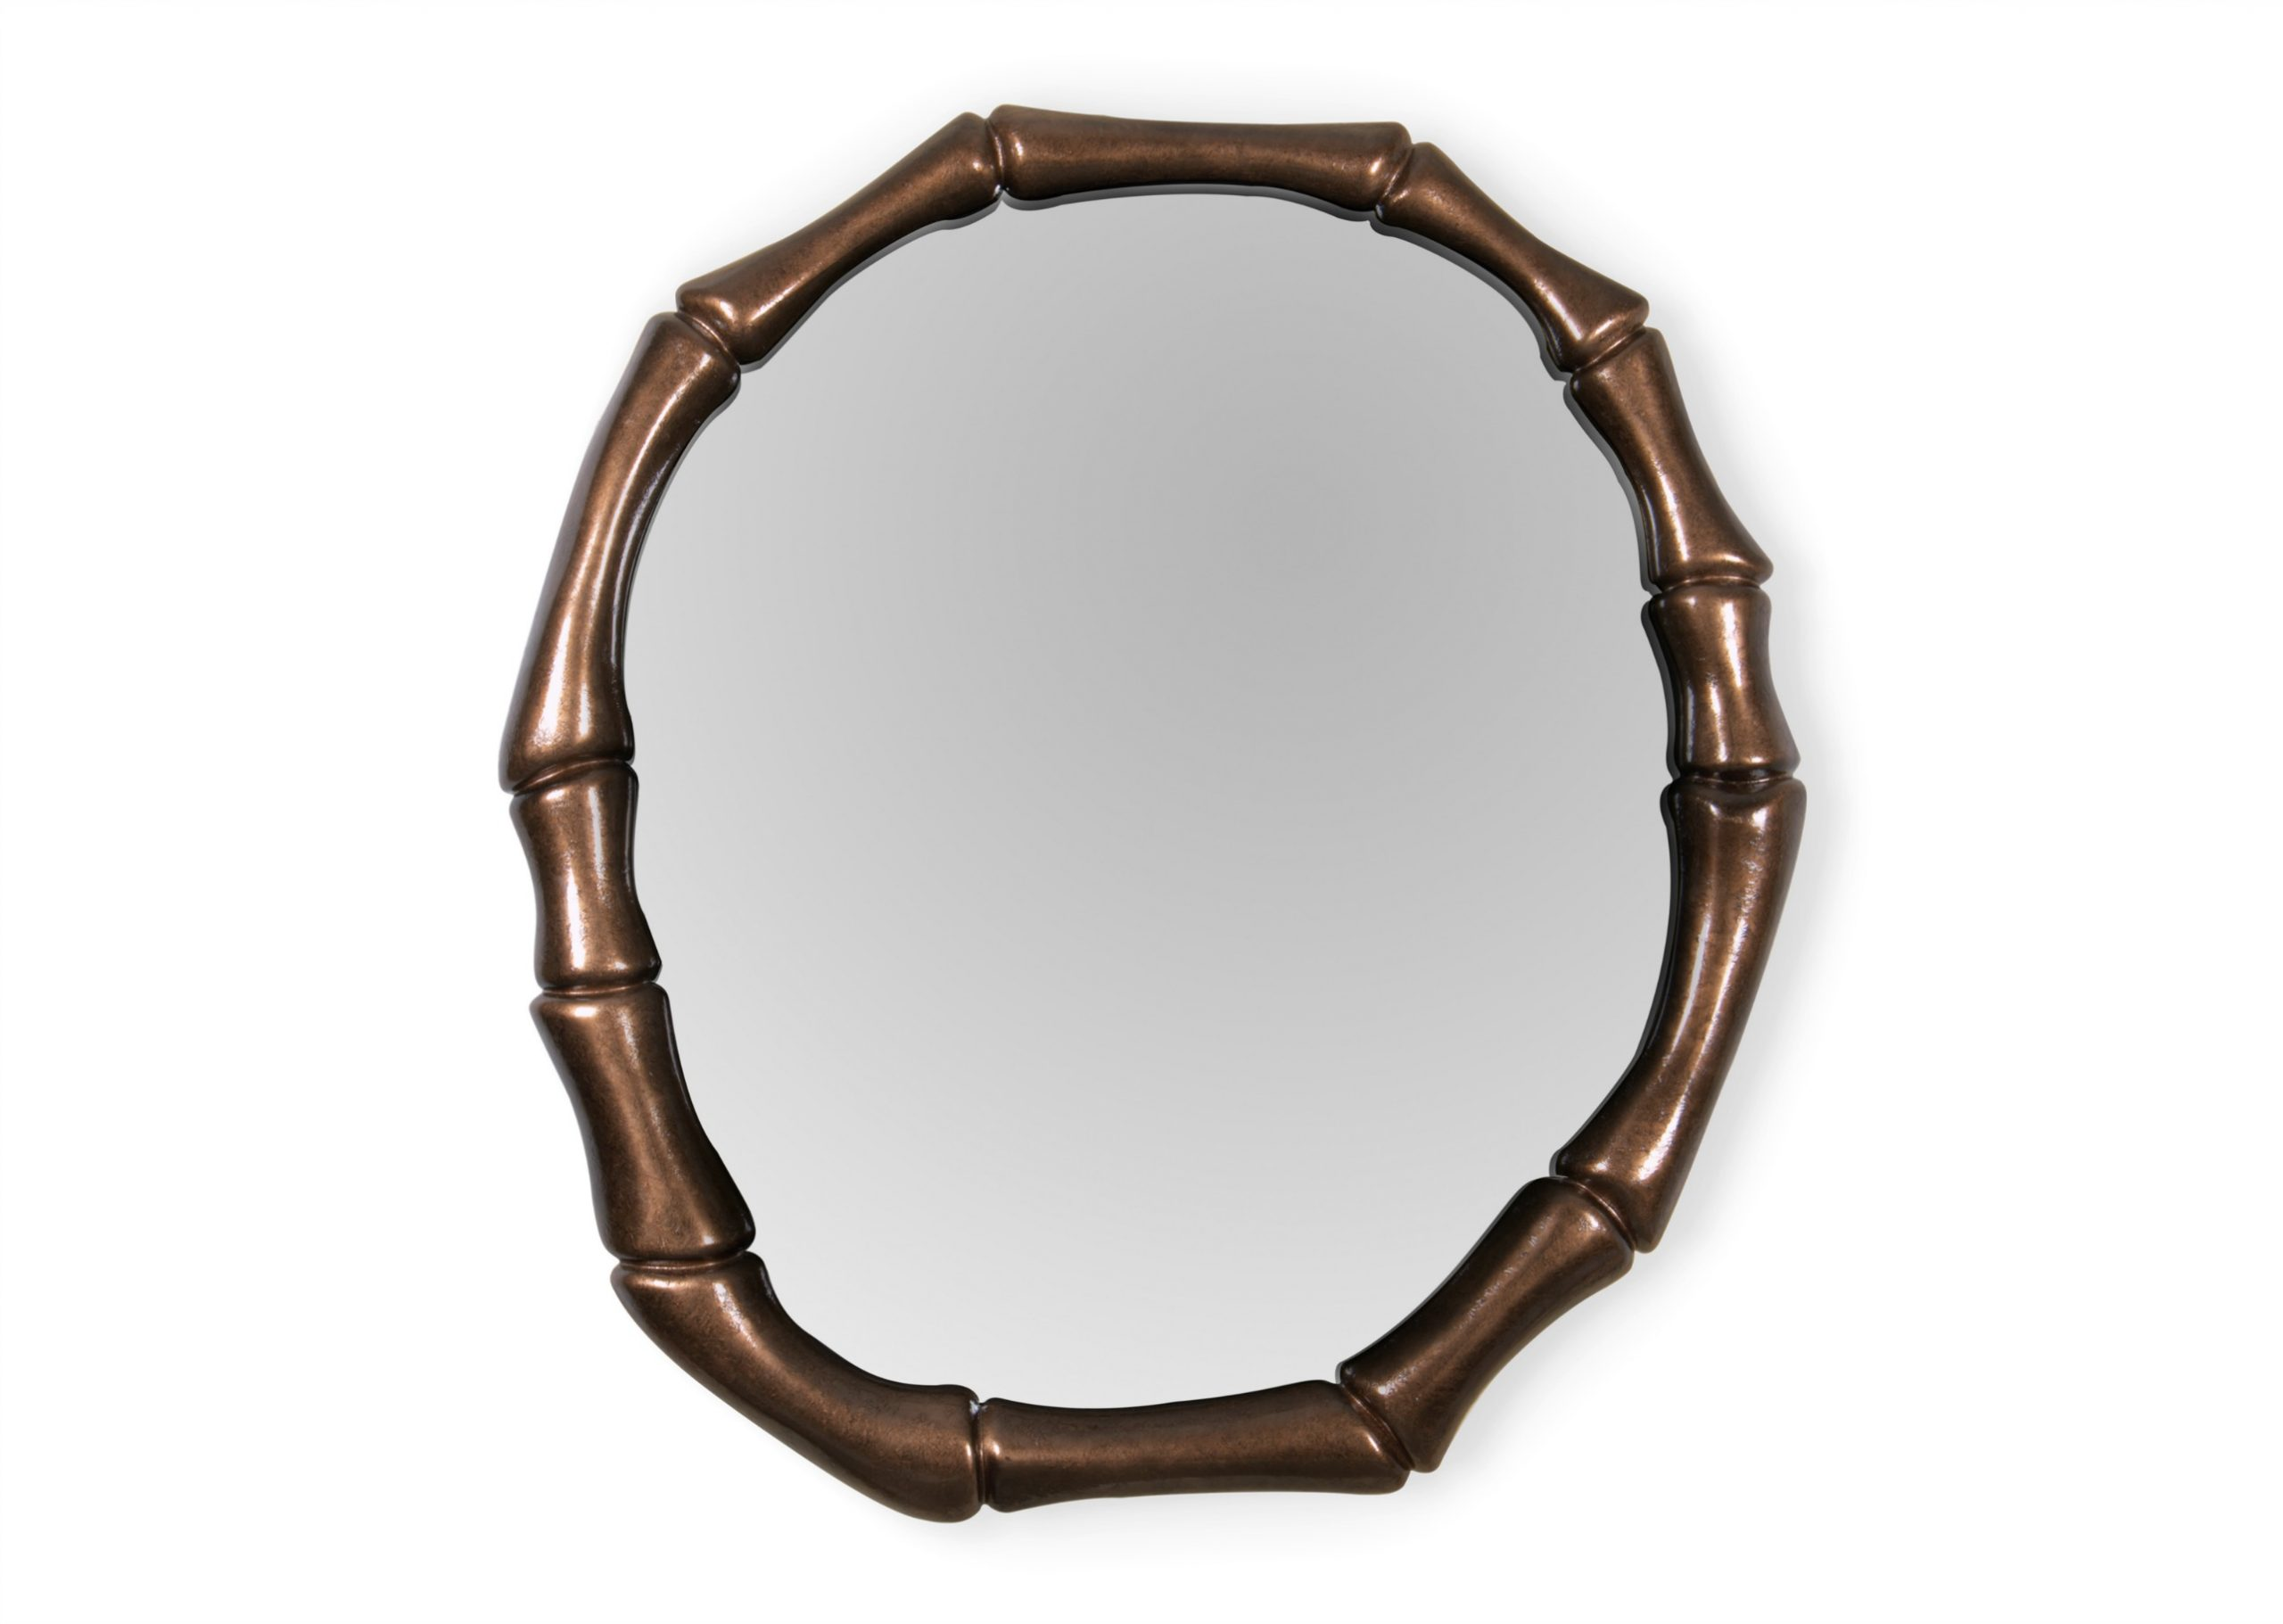 Round Mirrors: Find Out Extraordinary Pieces to Highlight your House round mirrorsRound Mirrors: Find Out Extraordinary Pieces to Highlight your Househaiku mirror 1 HR scaled